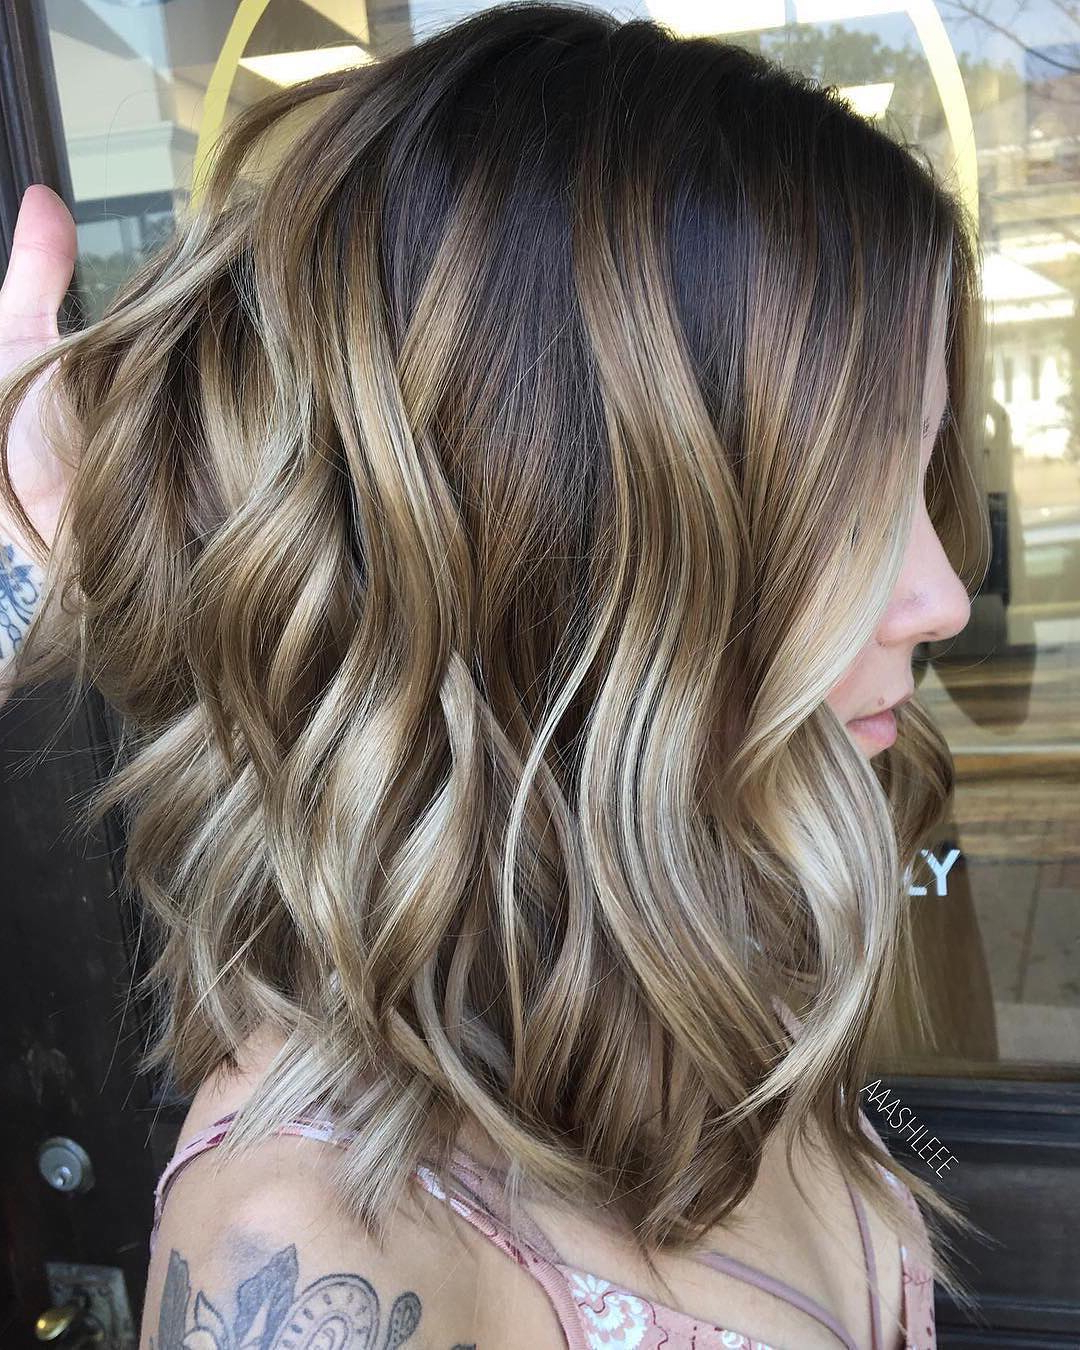 10 Ombre Balayage Hairstyles For Medium Length Hair, Hair Color 2019 Pertaining To Soft Auburn Look Hairstyles (View 19 of 20)